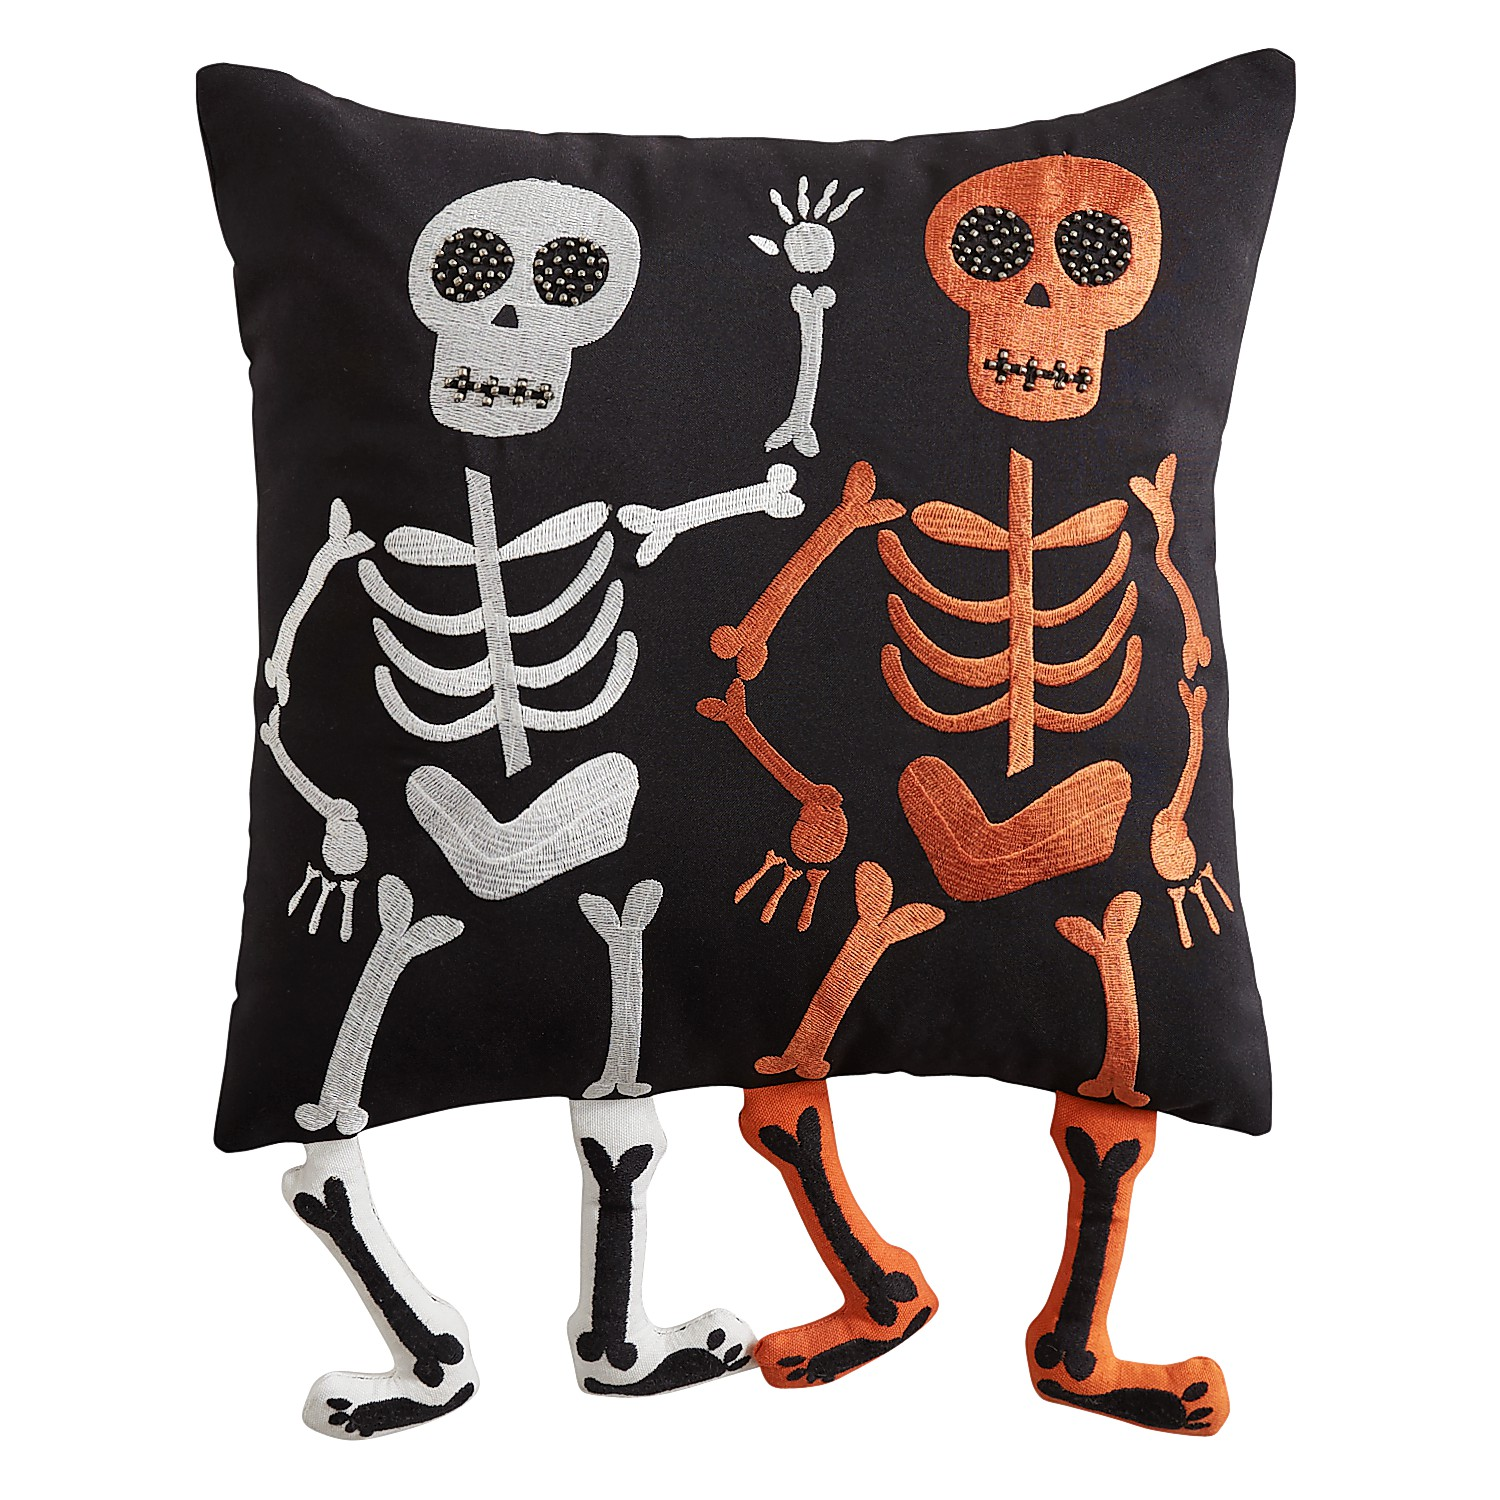 Skeleton with Dangling Legs Pillow